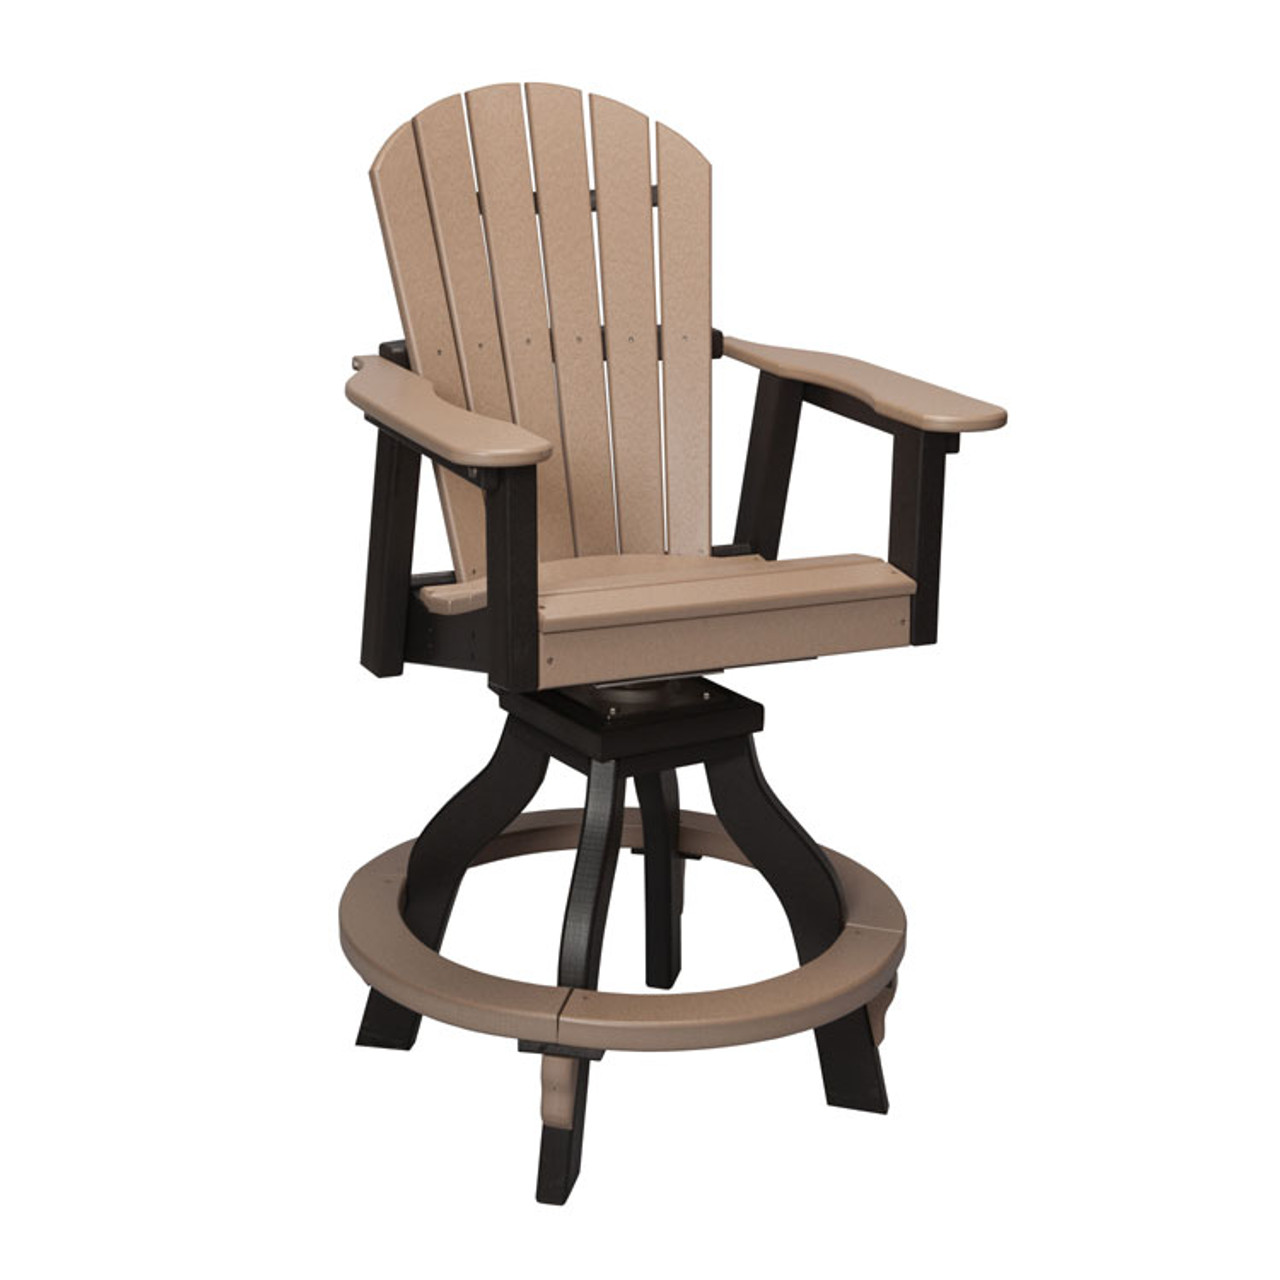 low priced a3851 542bb Oceanside Outdoor Poly Lumber Swivel Counter Height Stool with Arms